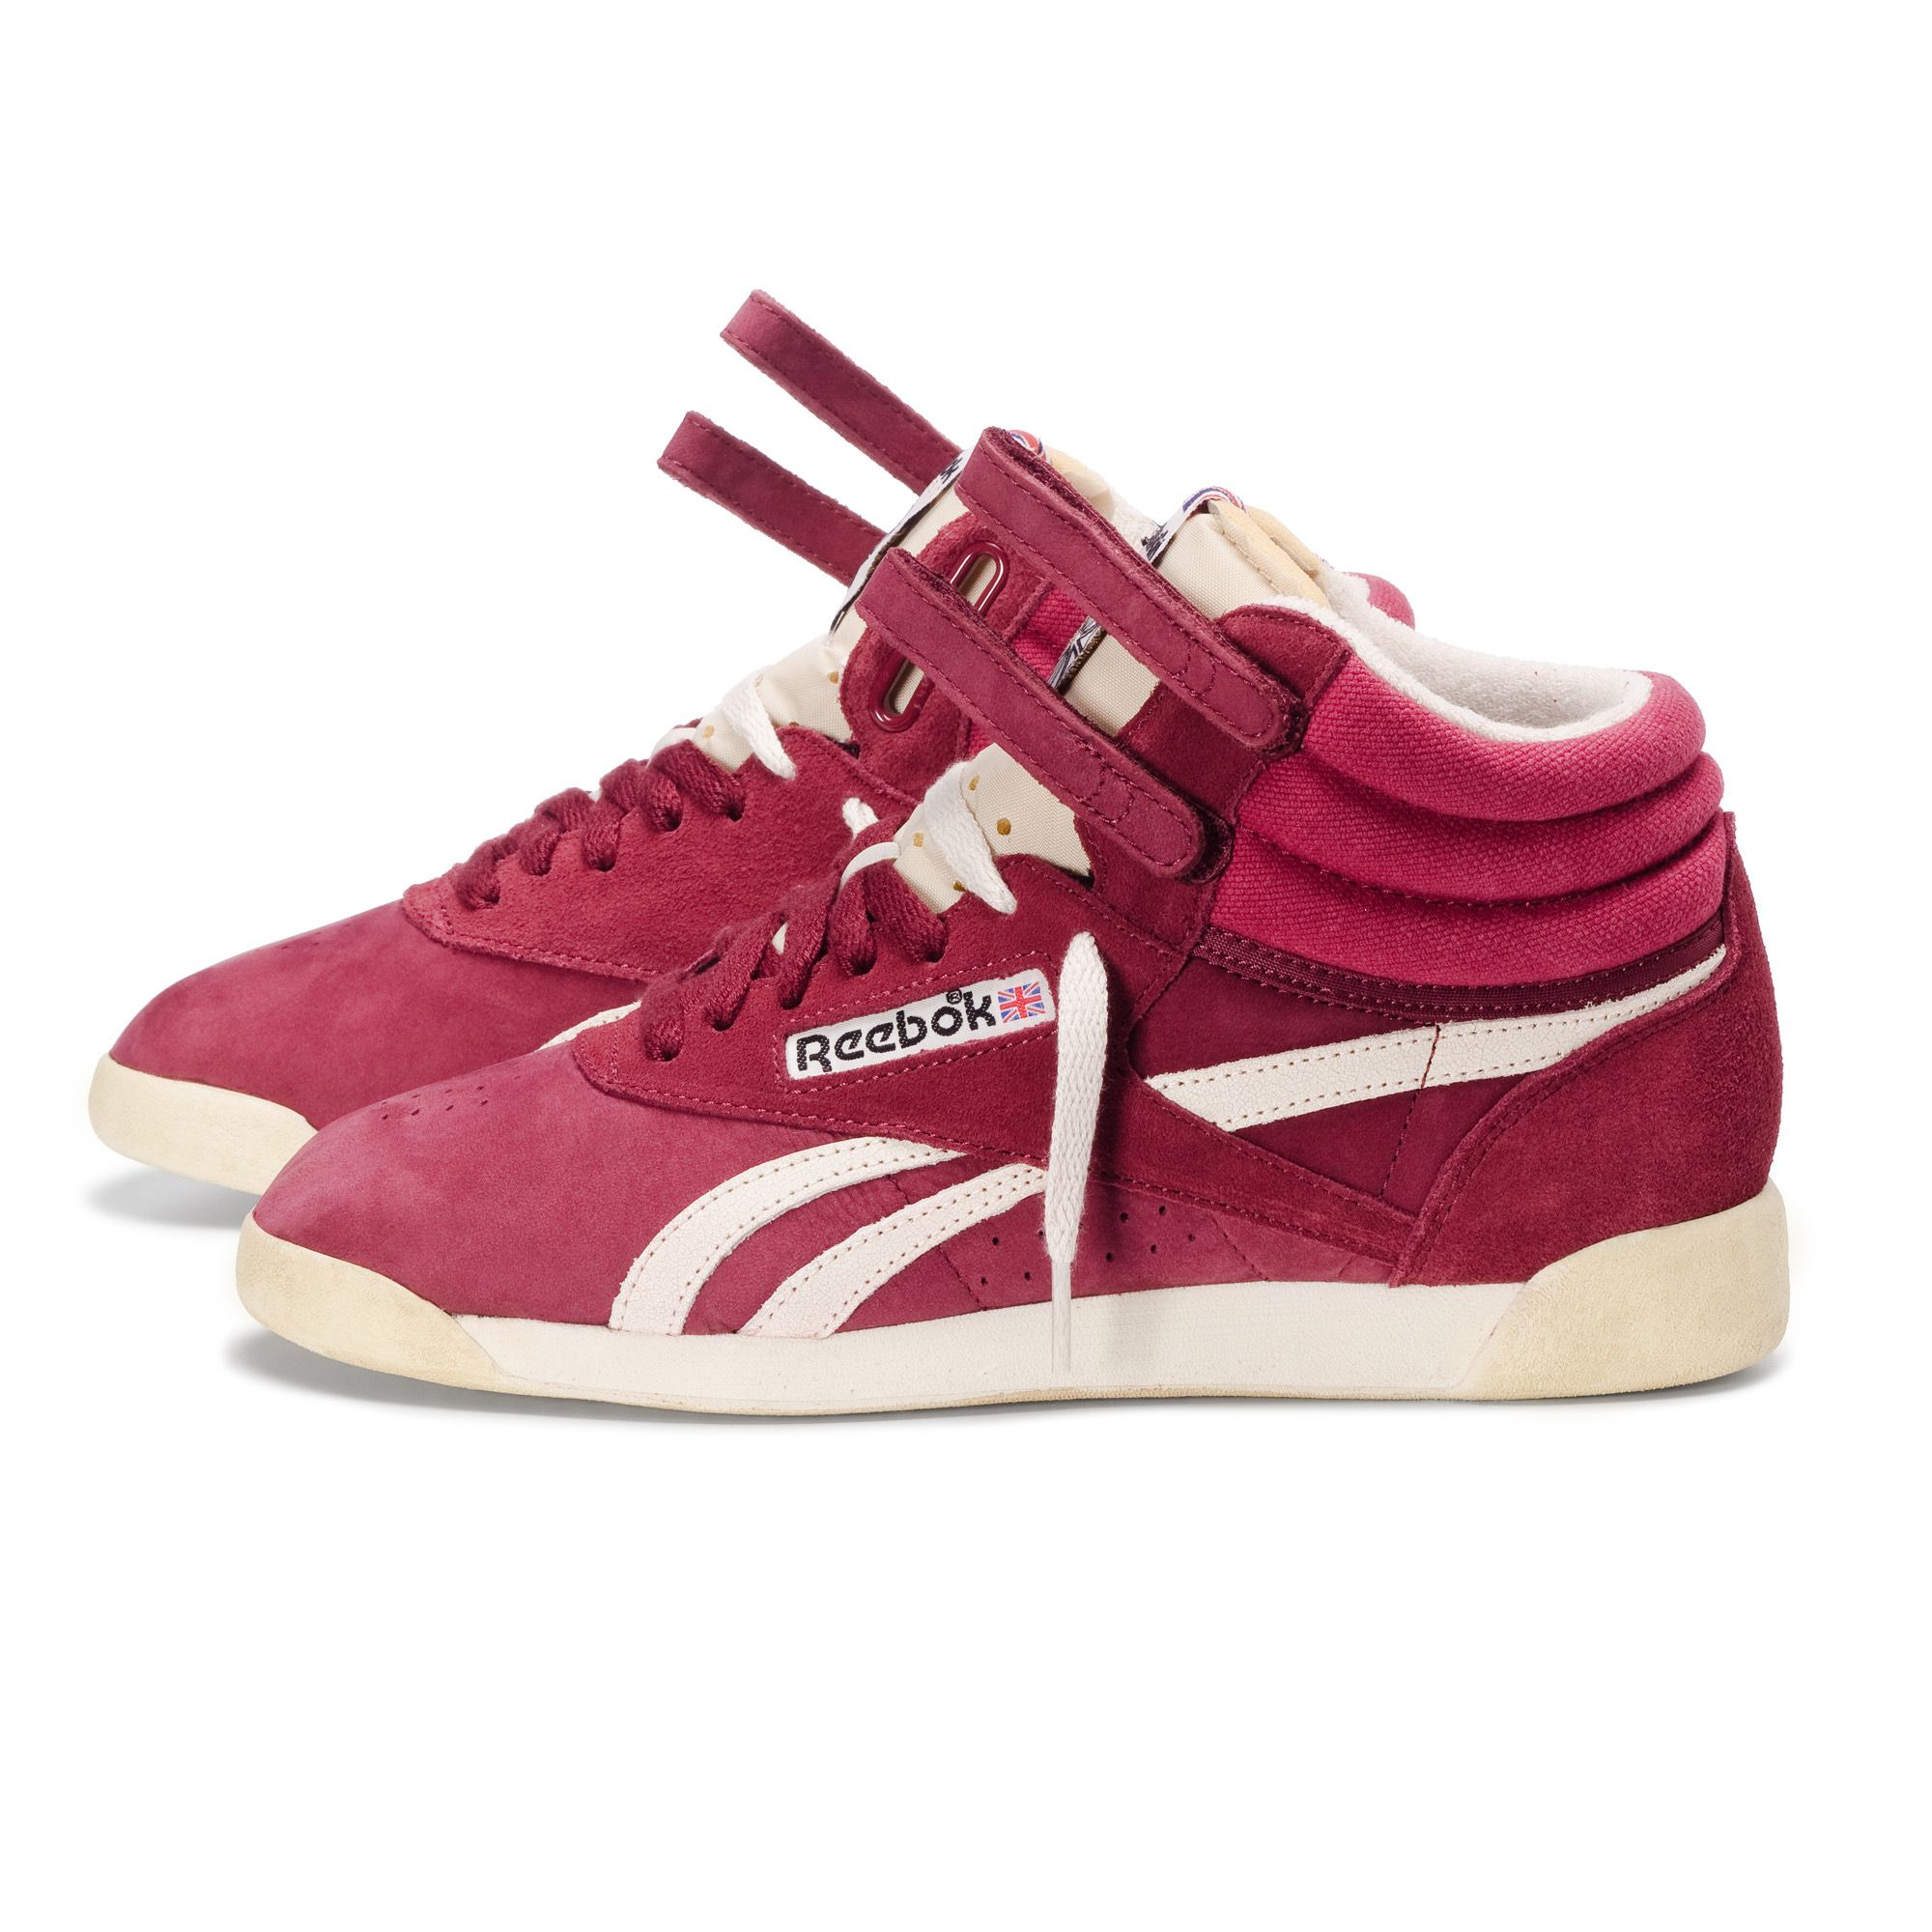 Reebok-running-shoes-and-sportsshoes-for-women (23)